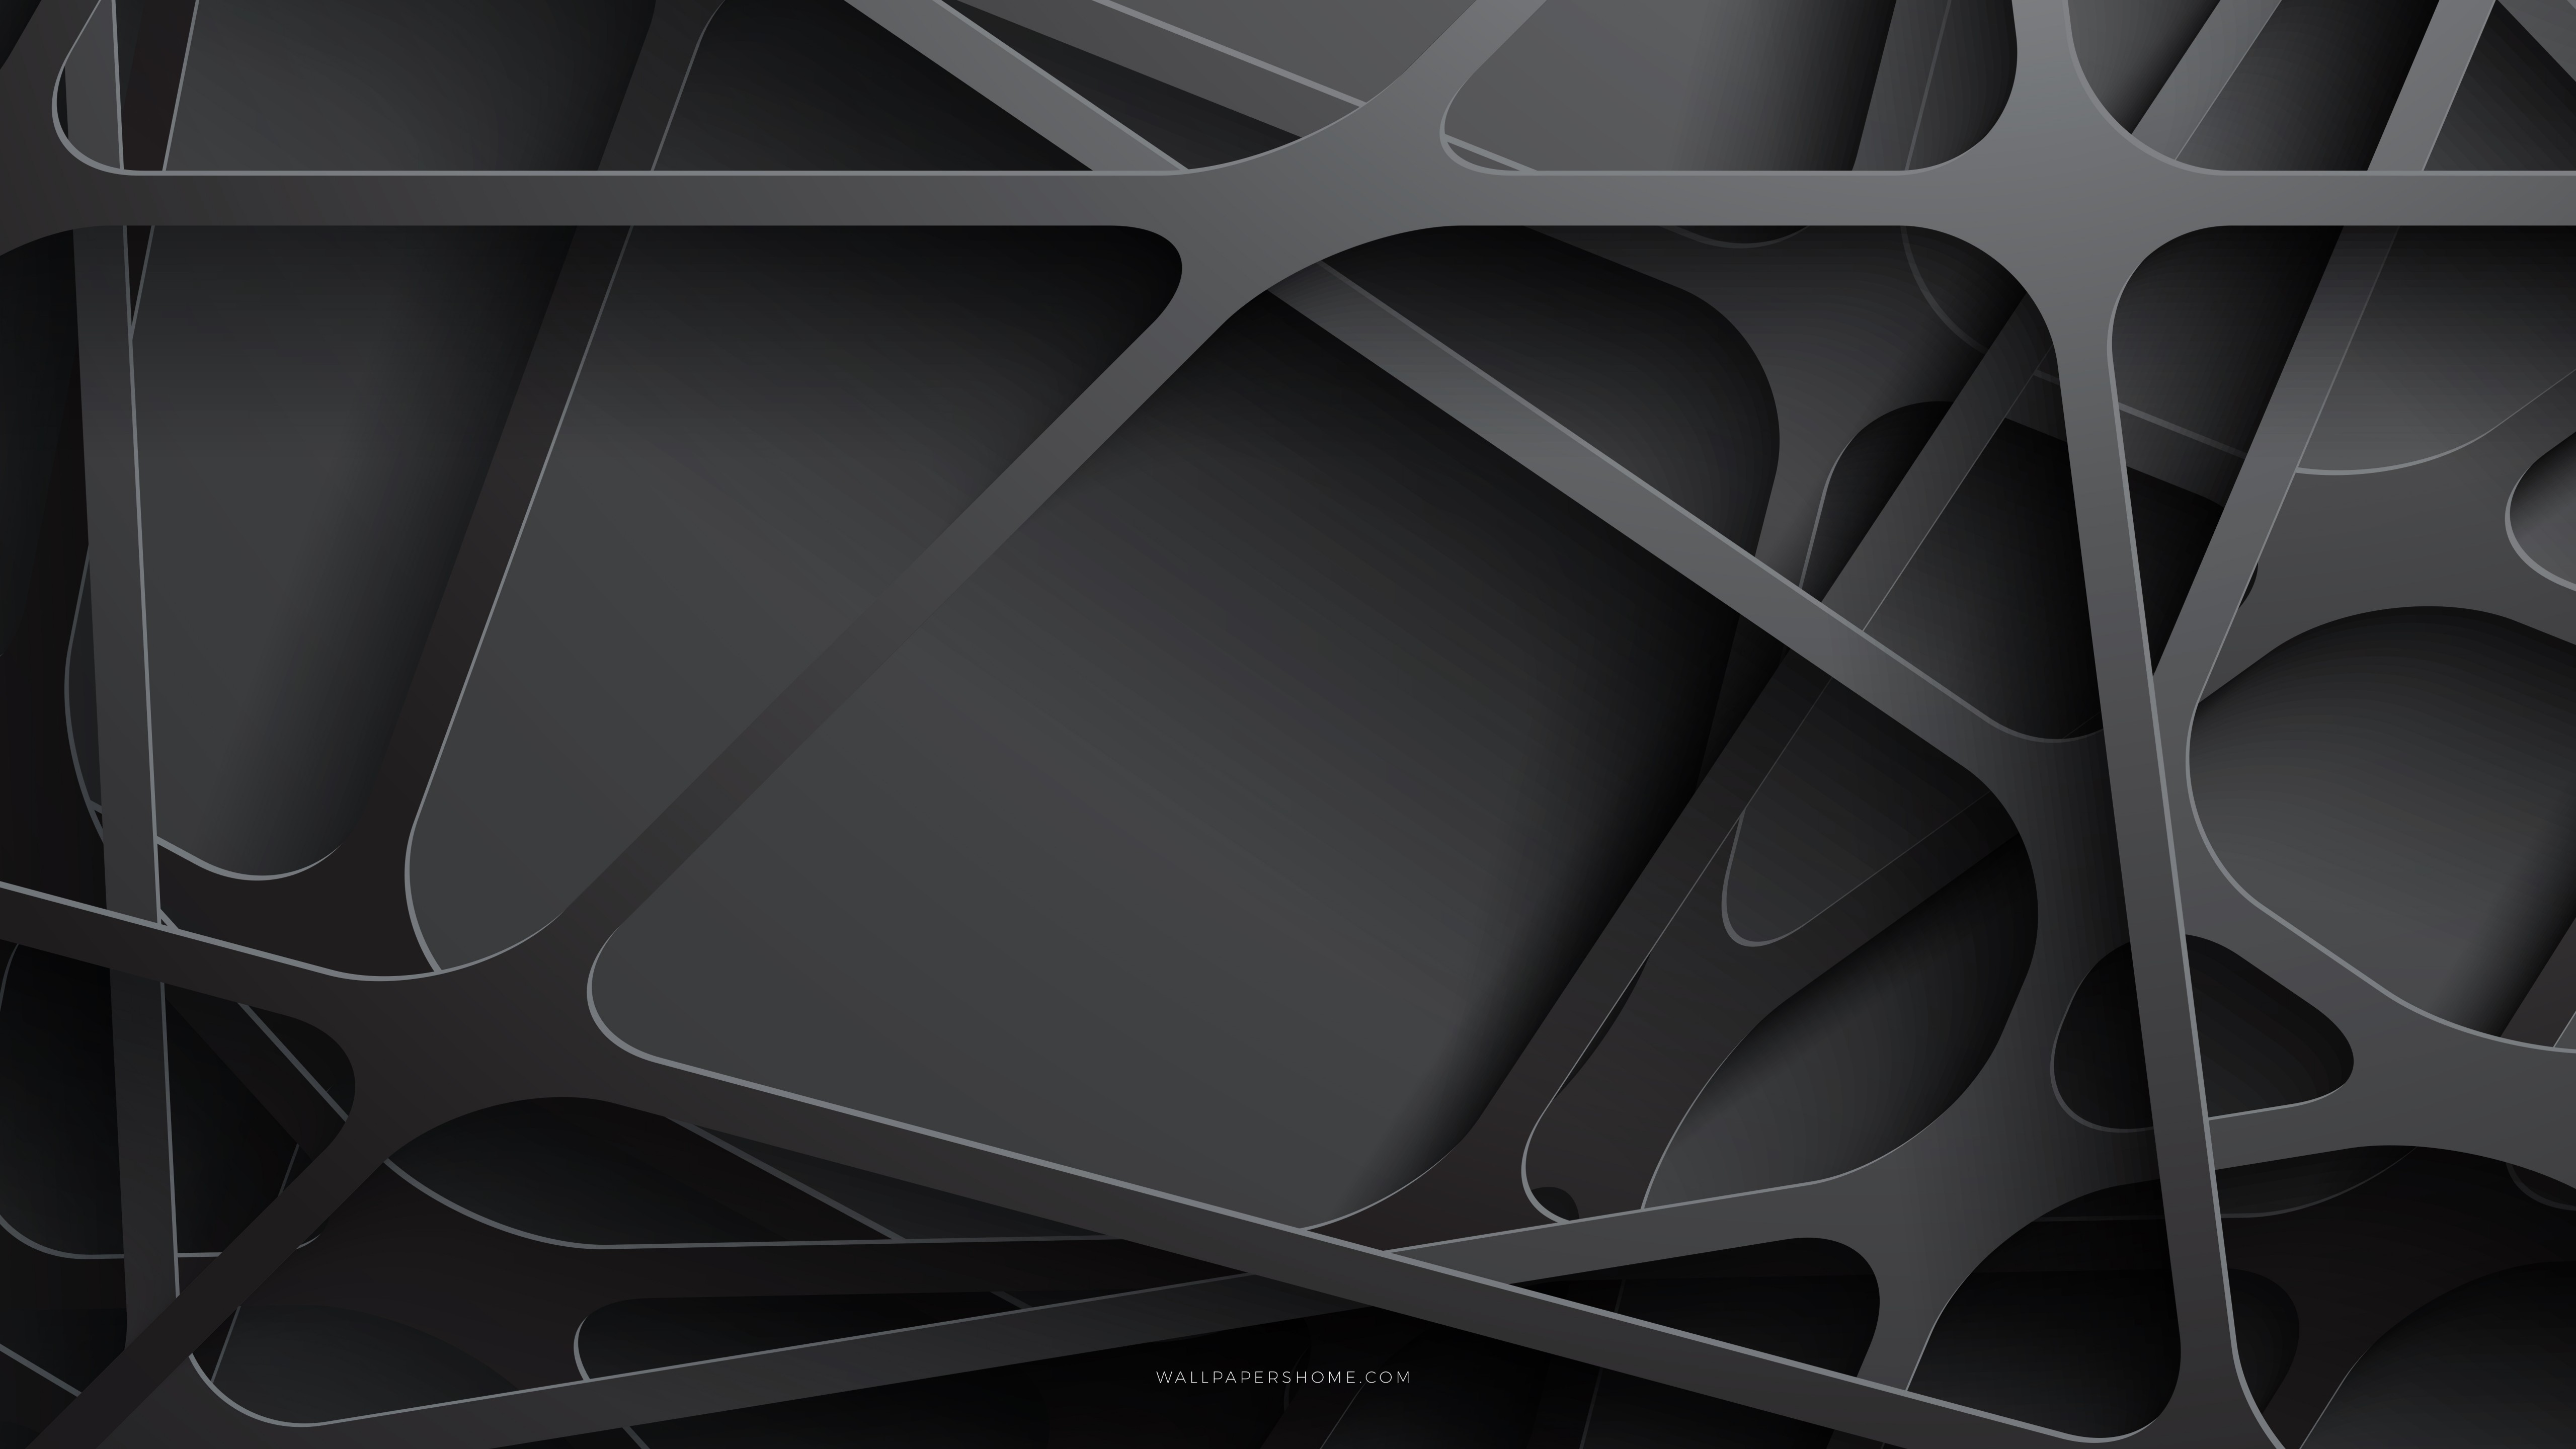 3d Wallpaper Samsung Note 3 Wallpaper Abstract 3d Black 8k Abstract 21284